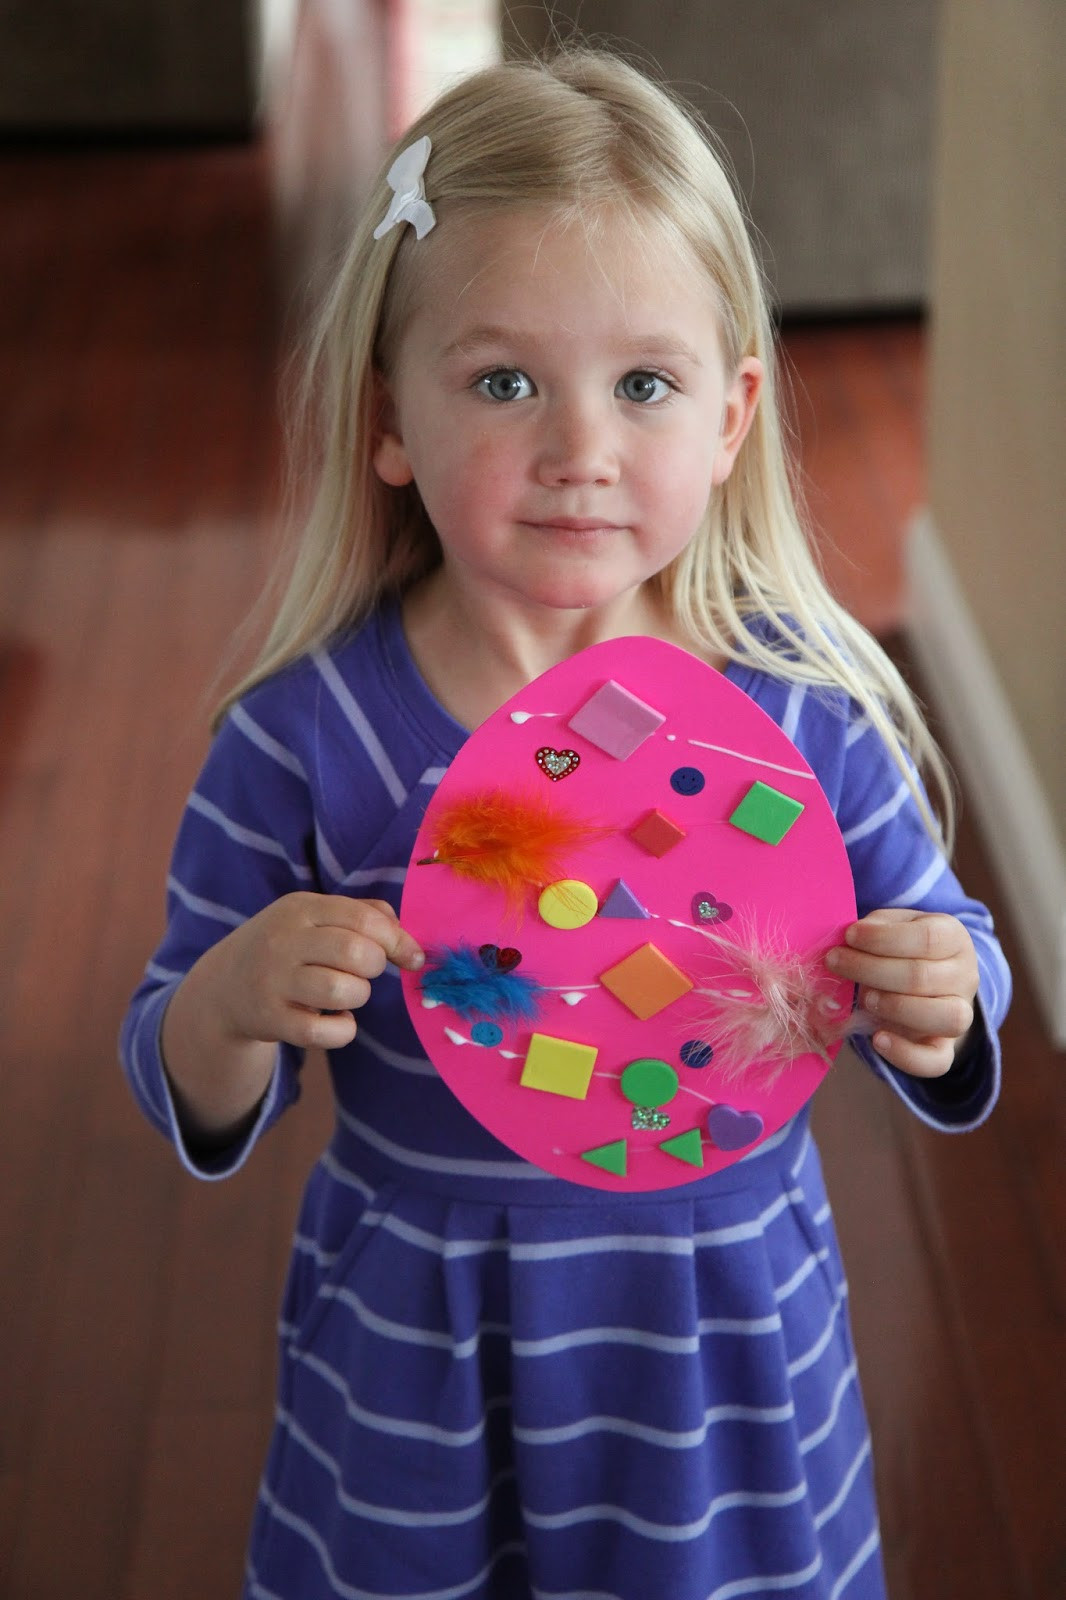 Toddler Craft Project  Toddler Approved Easter Egg Collage Craft for Toddlers